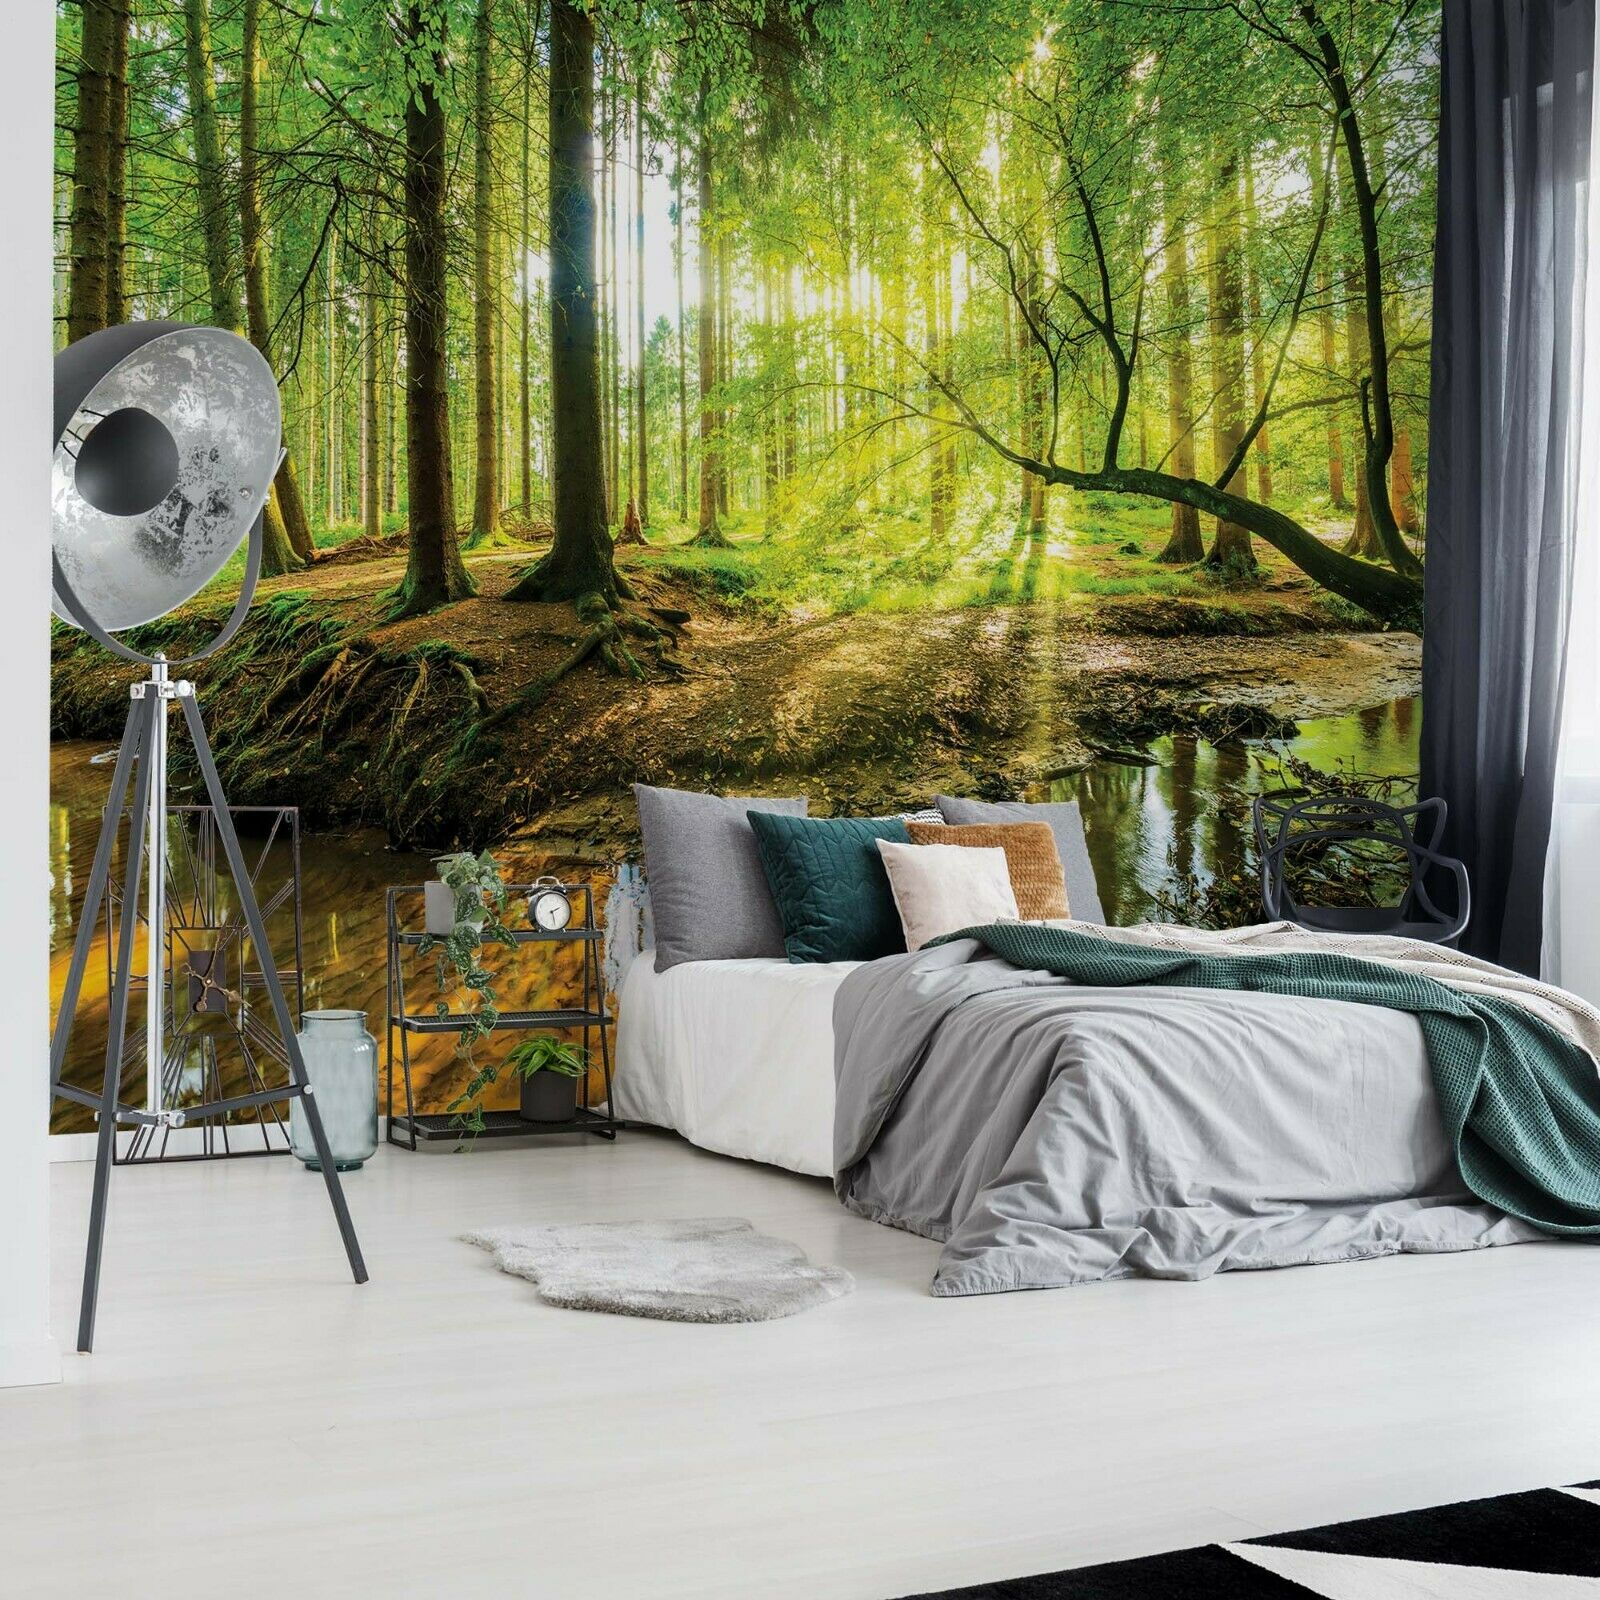 315x232cm Giant wall mural photo wallpaper Autumn forest road